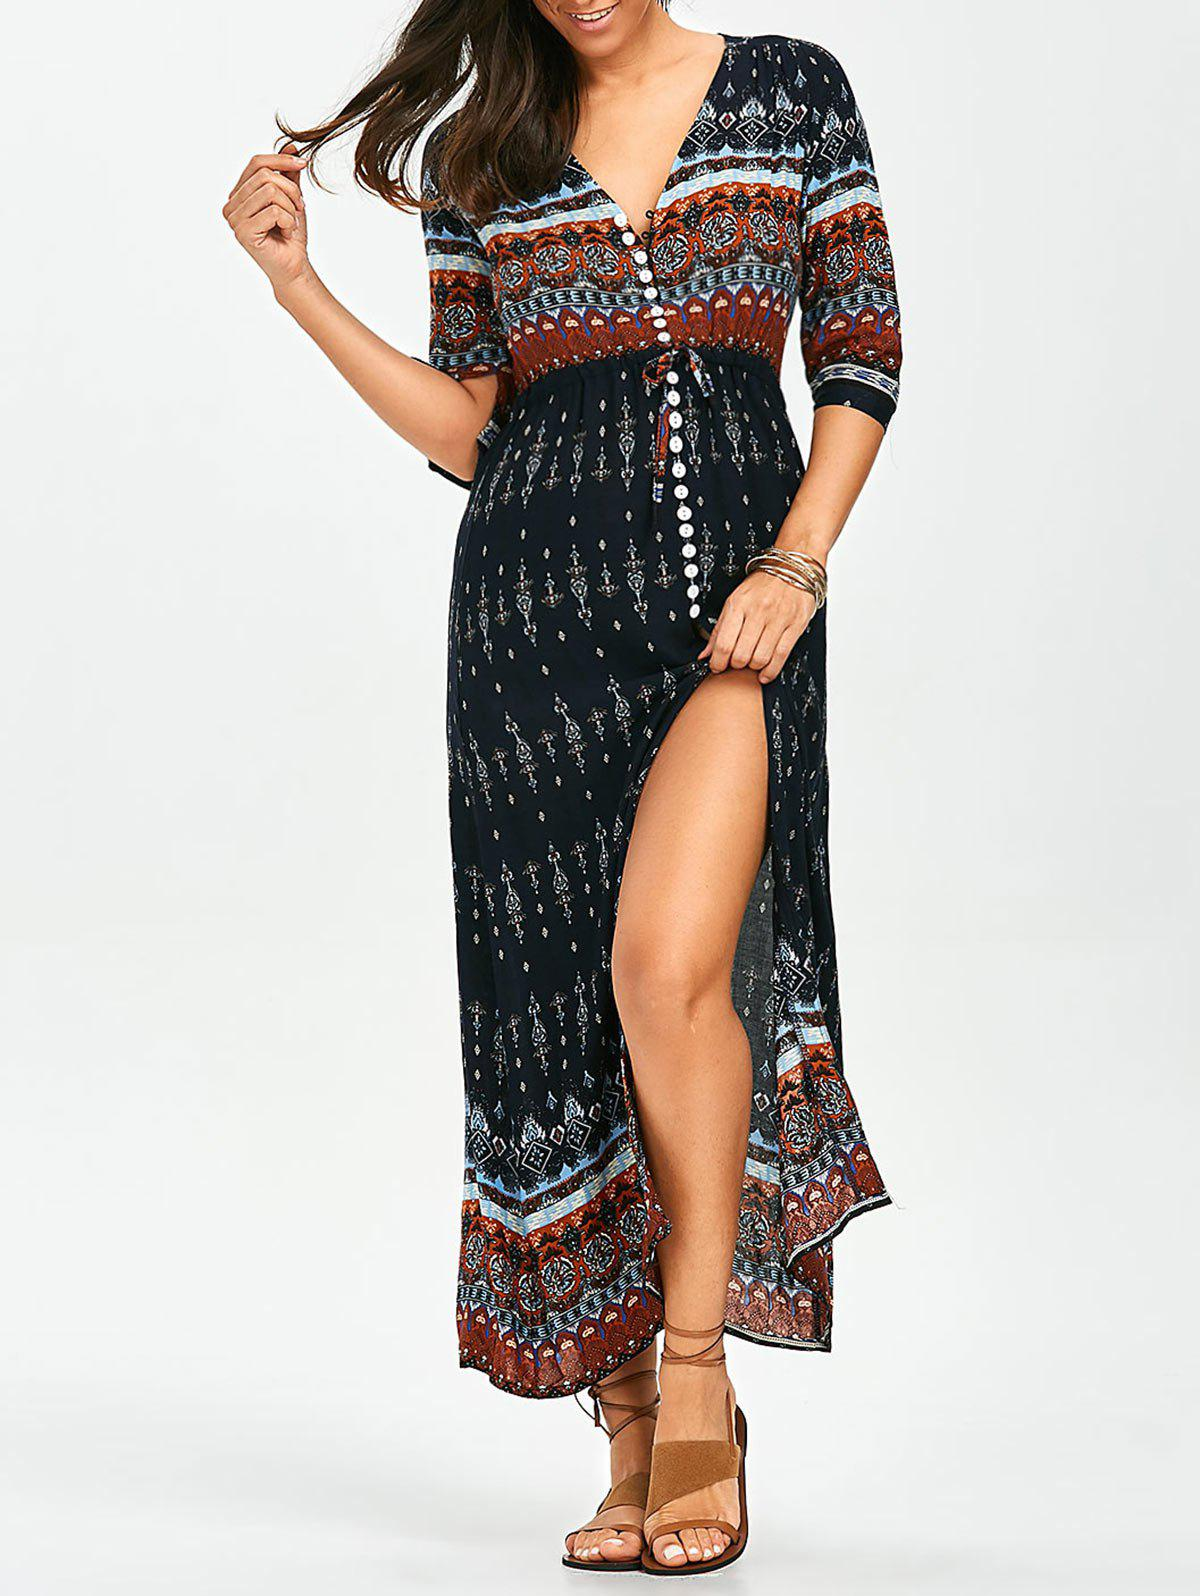 Bohemian Tribal Print Split Button Up Dress - COLORMIX M